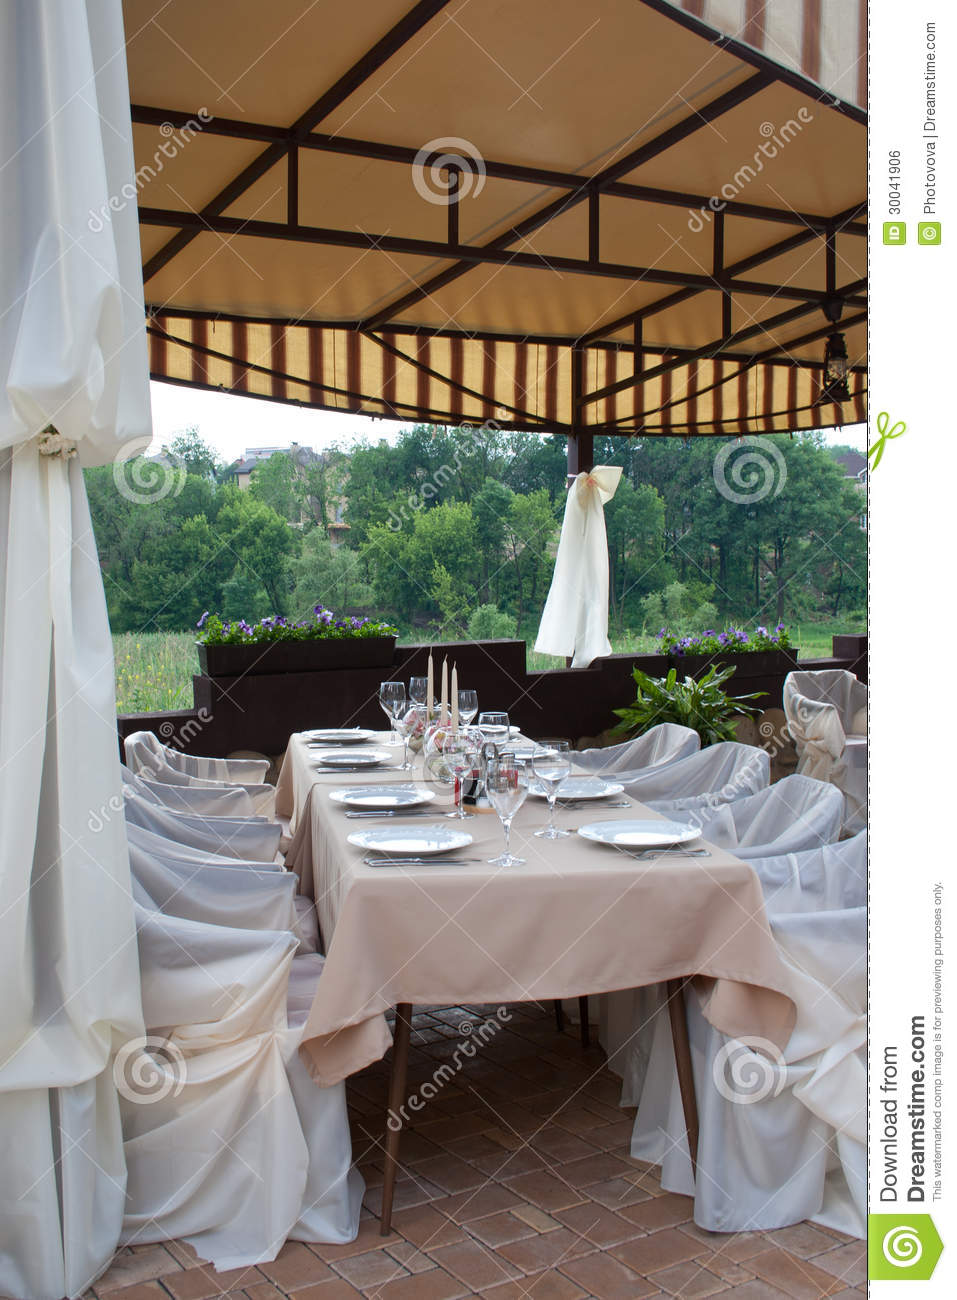 Breakfast bar with table setup stock photo cartoondealer